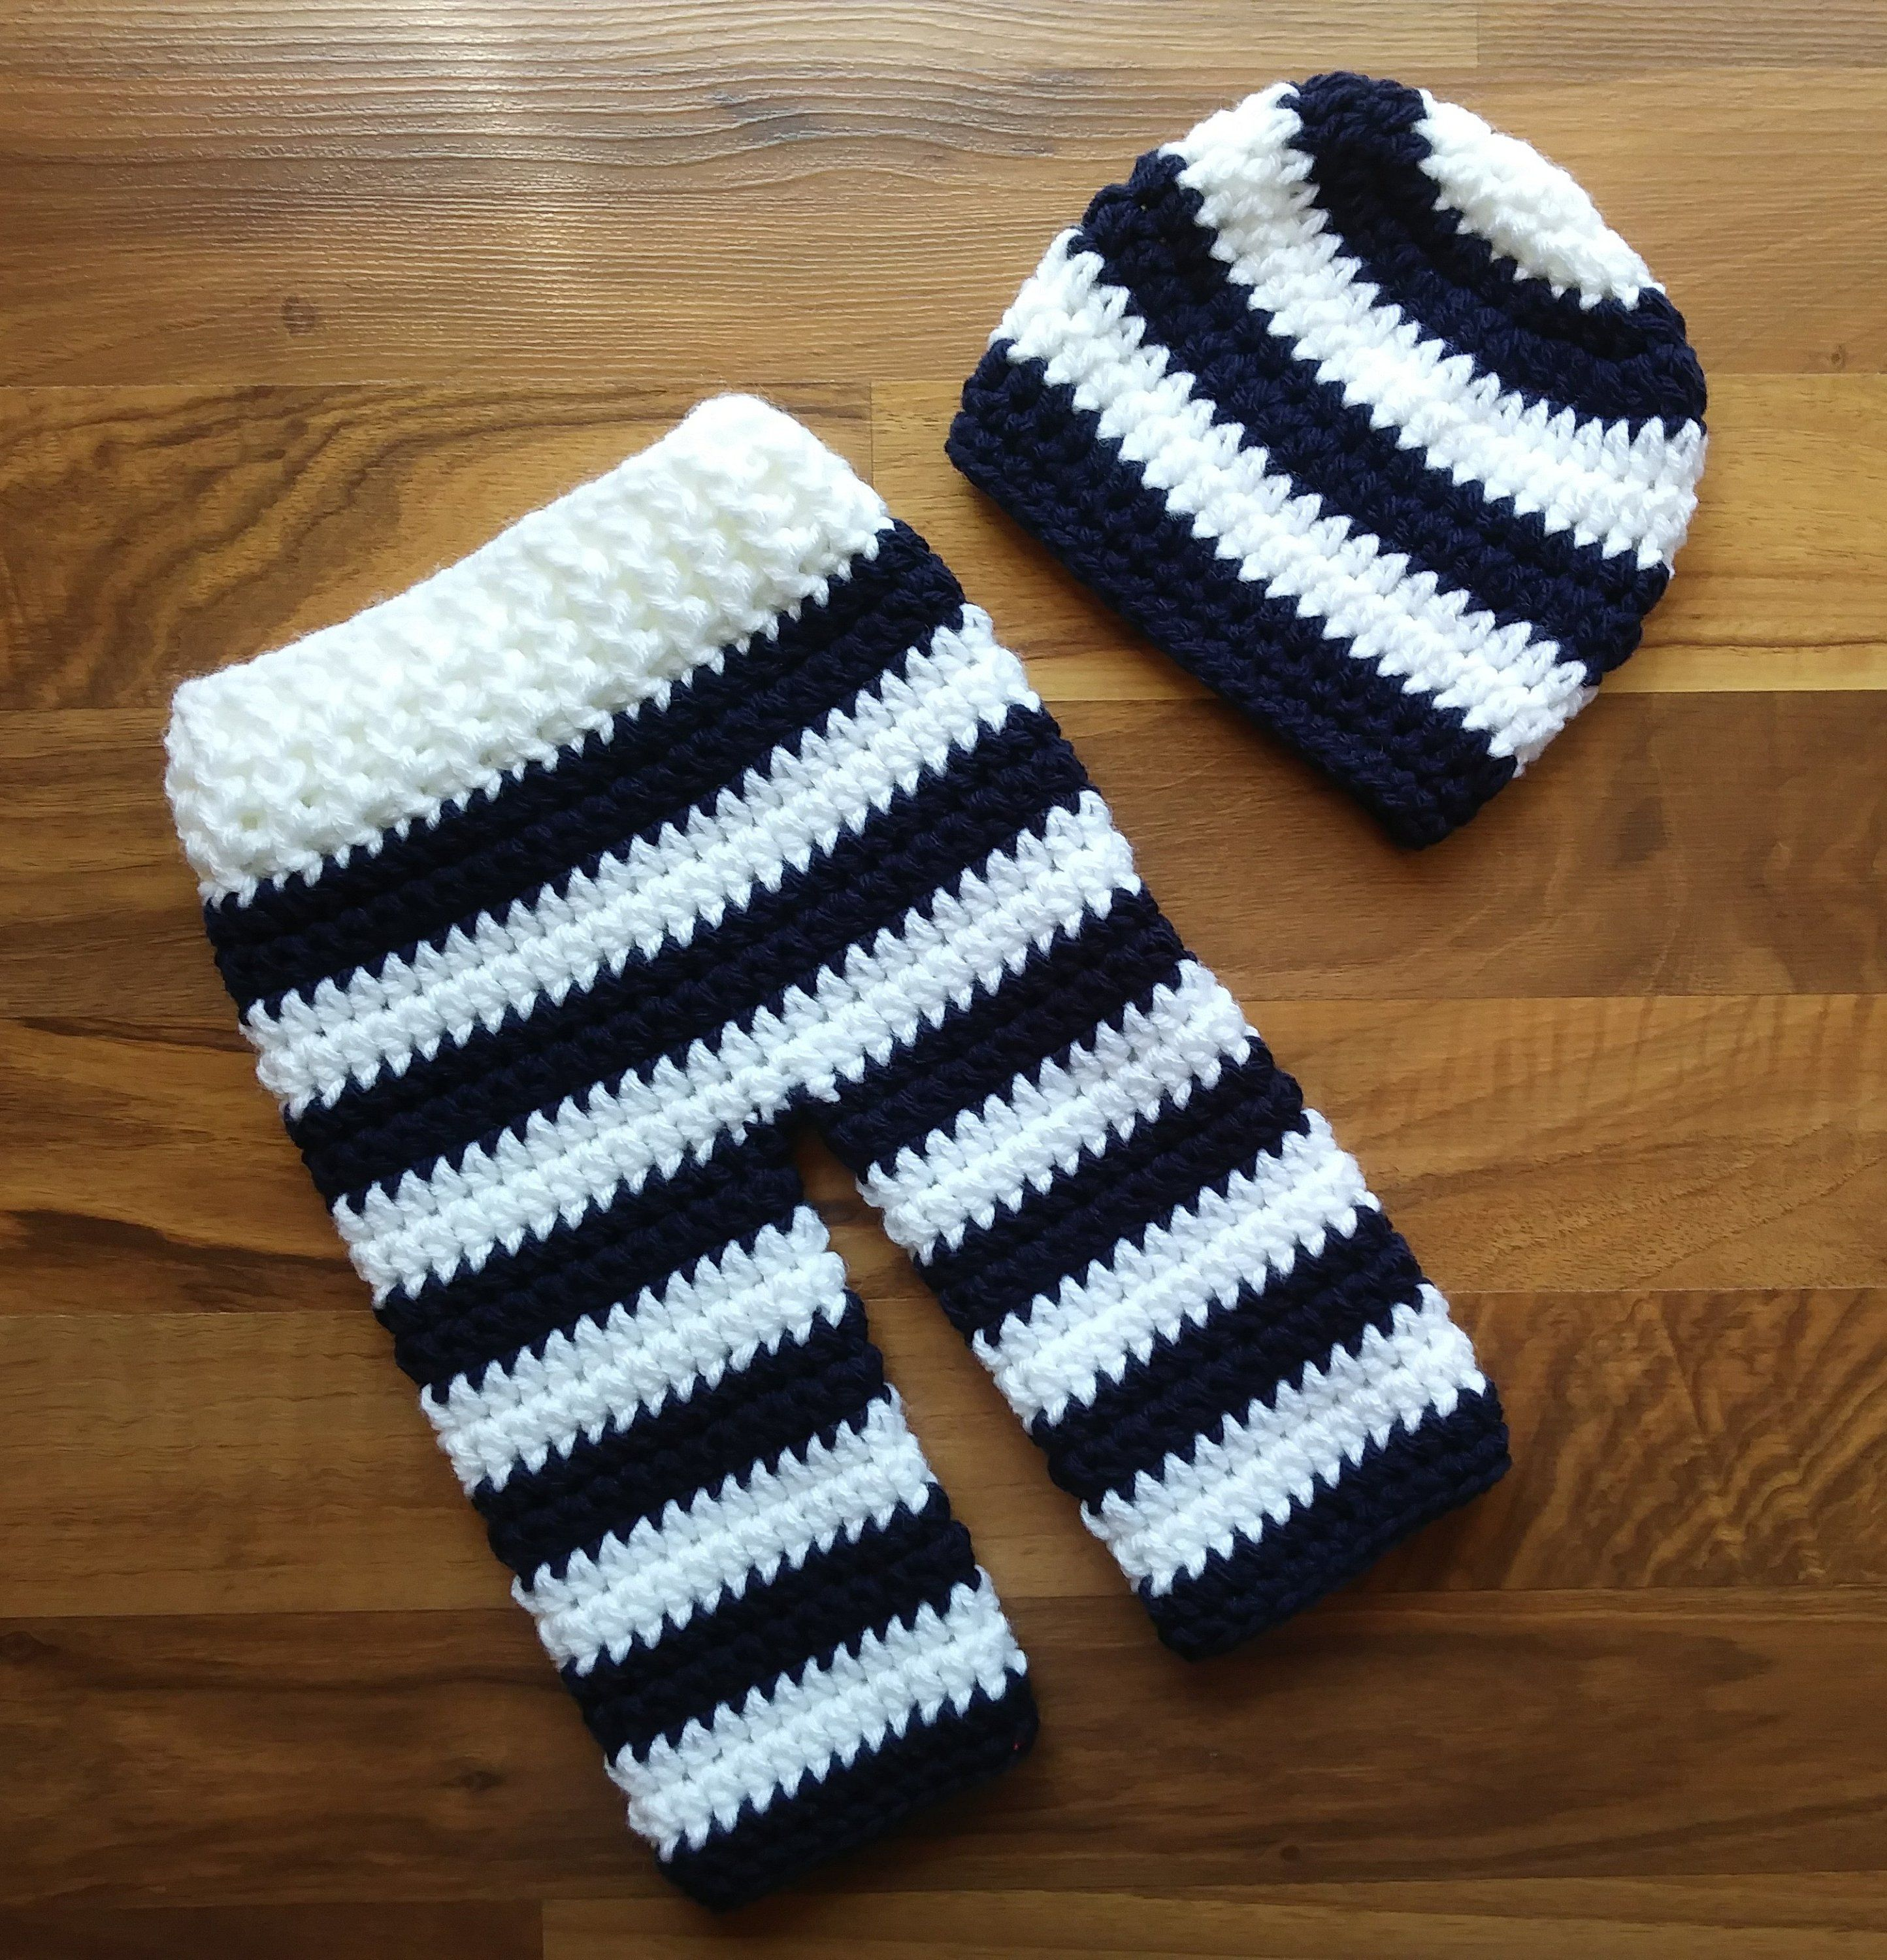 f1b5bf8bb Crocheted Baby Boy Hat and Pants Set ~ Dark Navy Blue & White Wide Stripes  ~ Shower Gift ~ Newborn Size (0 - 2 Month) ~ MADE TO ORDER by  KaraAndMollysKids ...